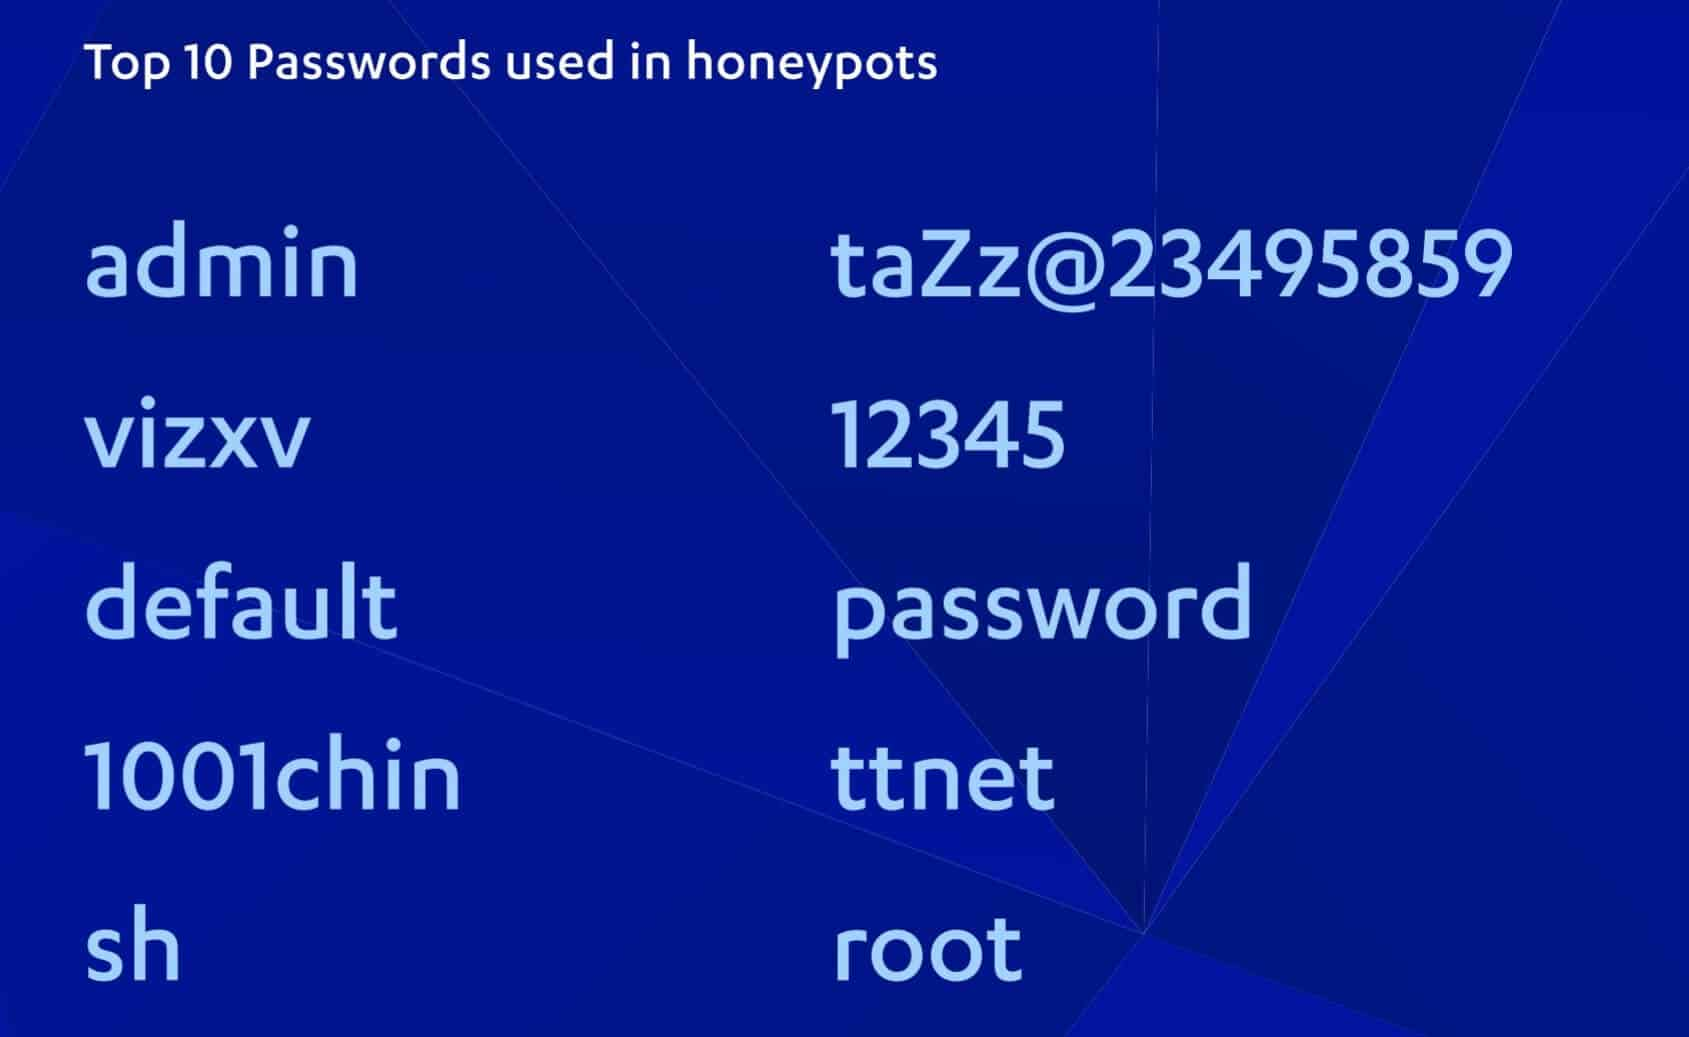 destas passwords